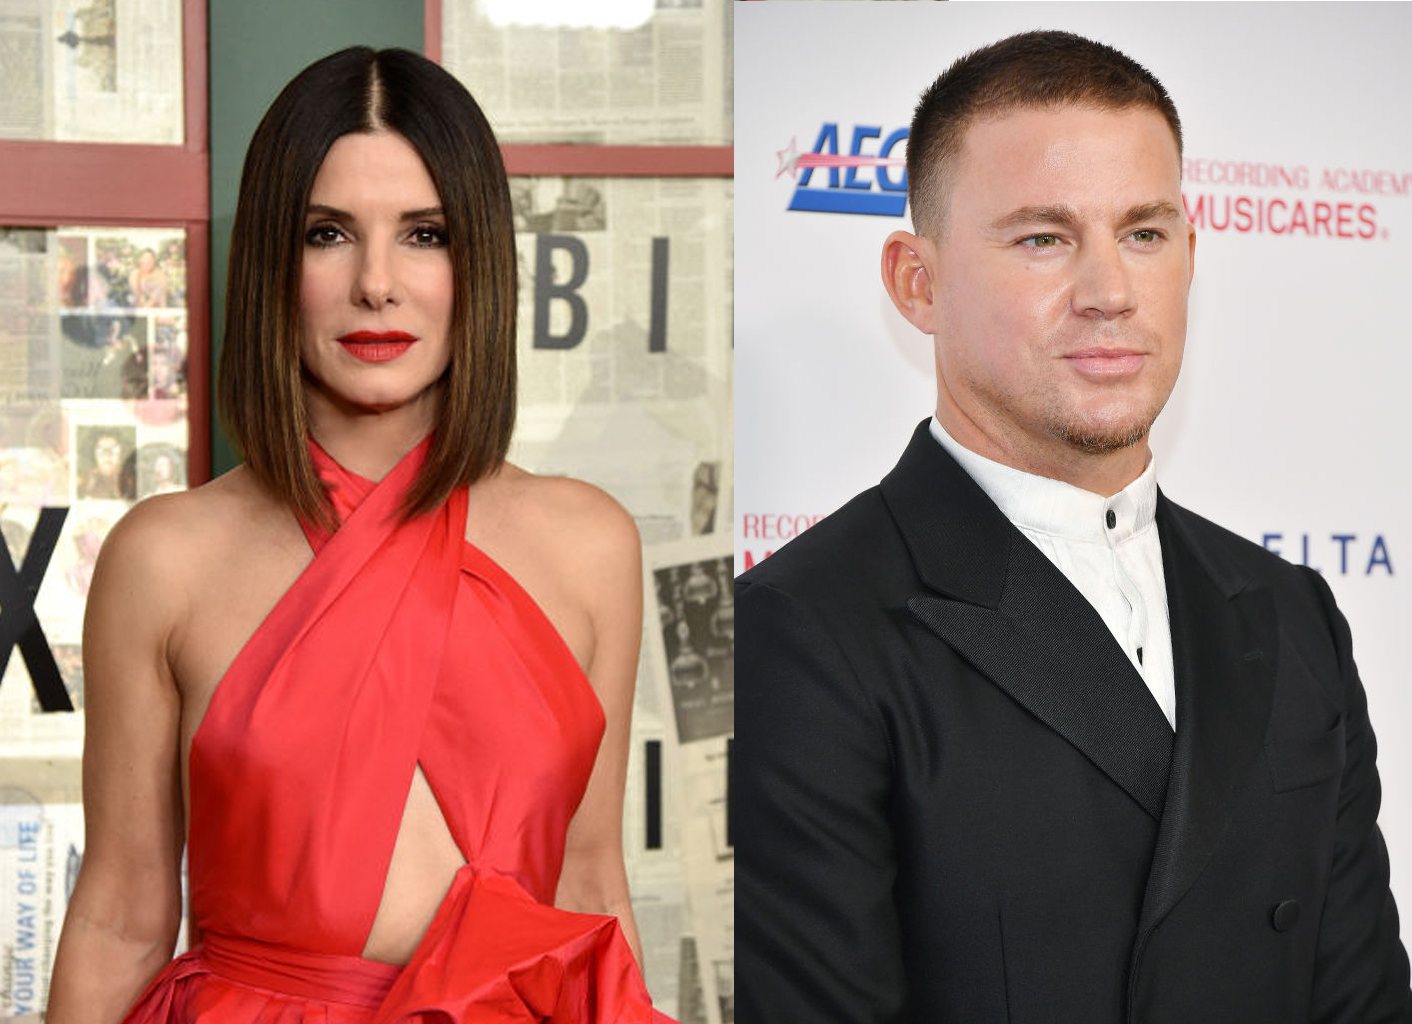 'The Lost City of D' Cast Channing Tatum Captions a Behind-The-Scenes Picture With A Very Sexy Sandra Bullock